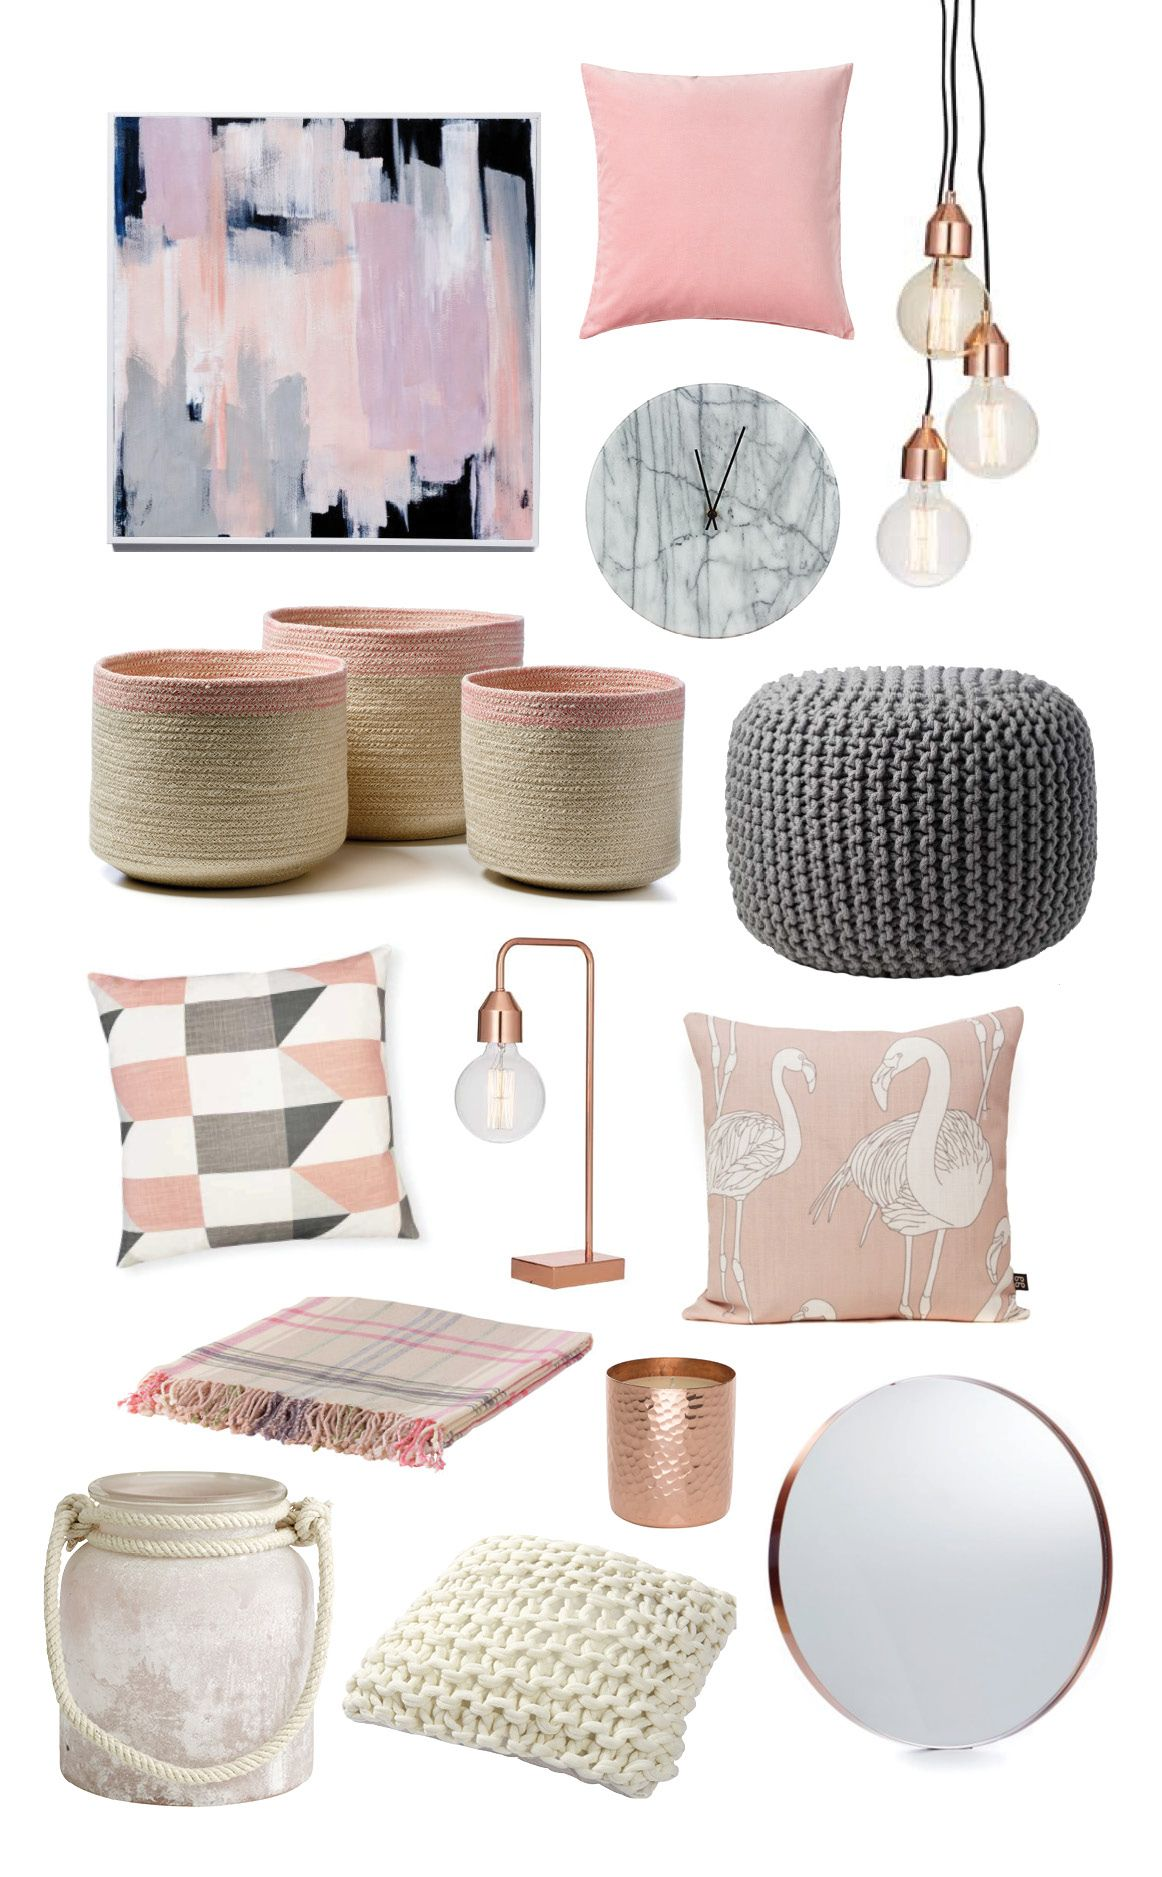 Trending items blush pink click through for stockists for Designer home decor accessories